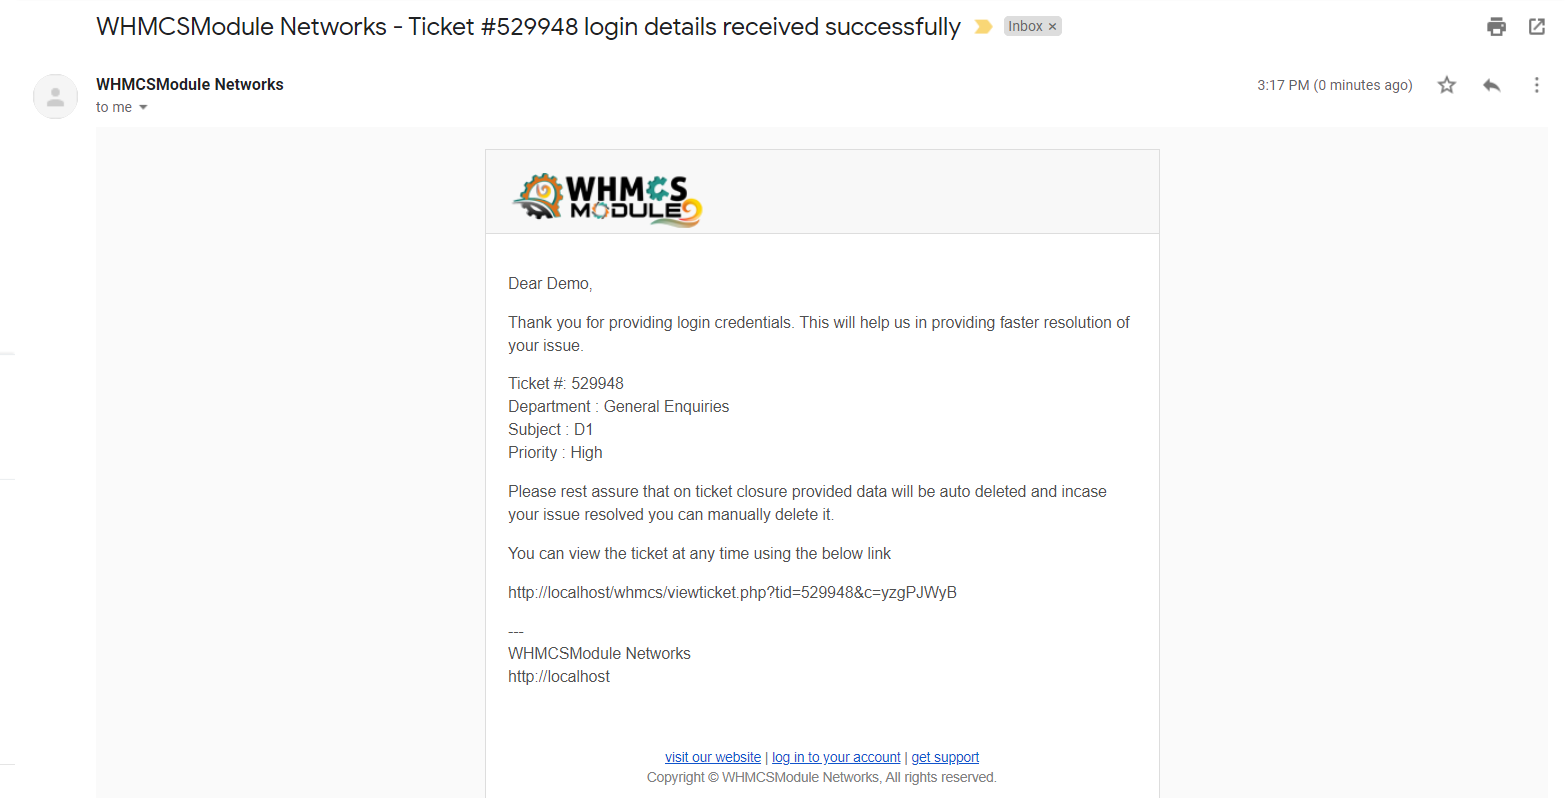 Sensitive Ticket Data for WHMCS